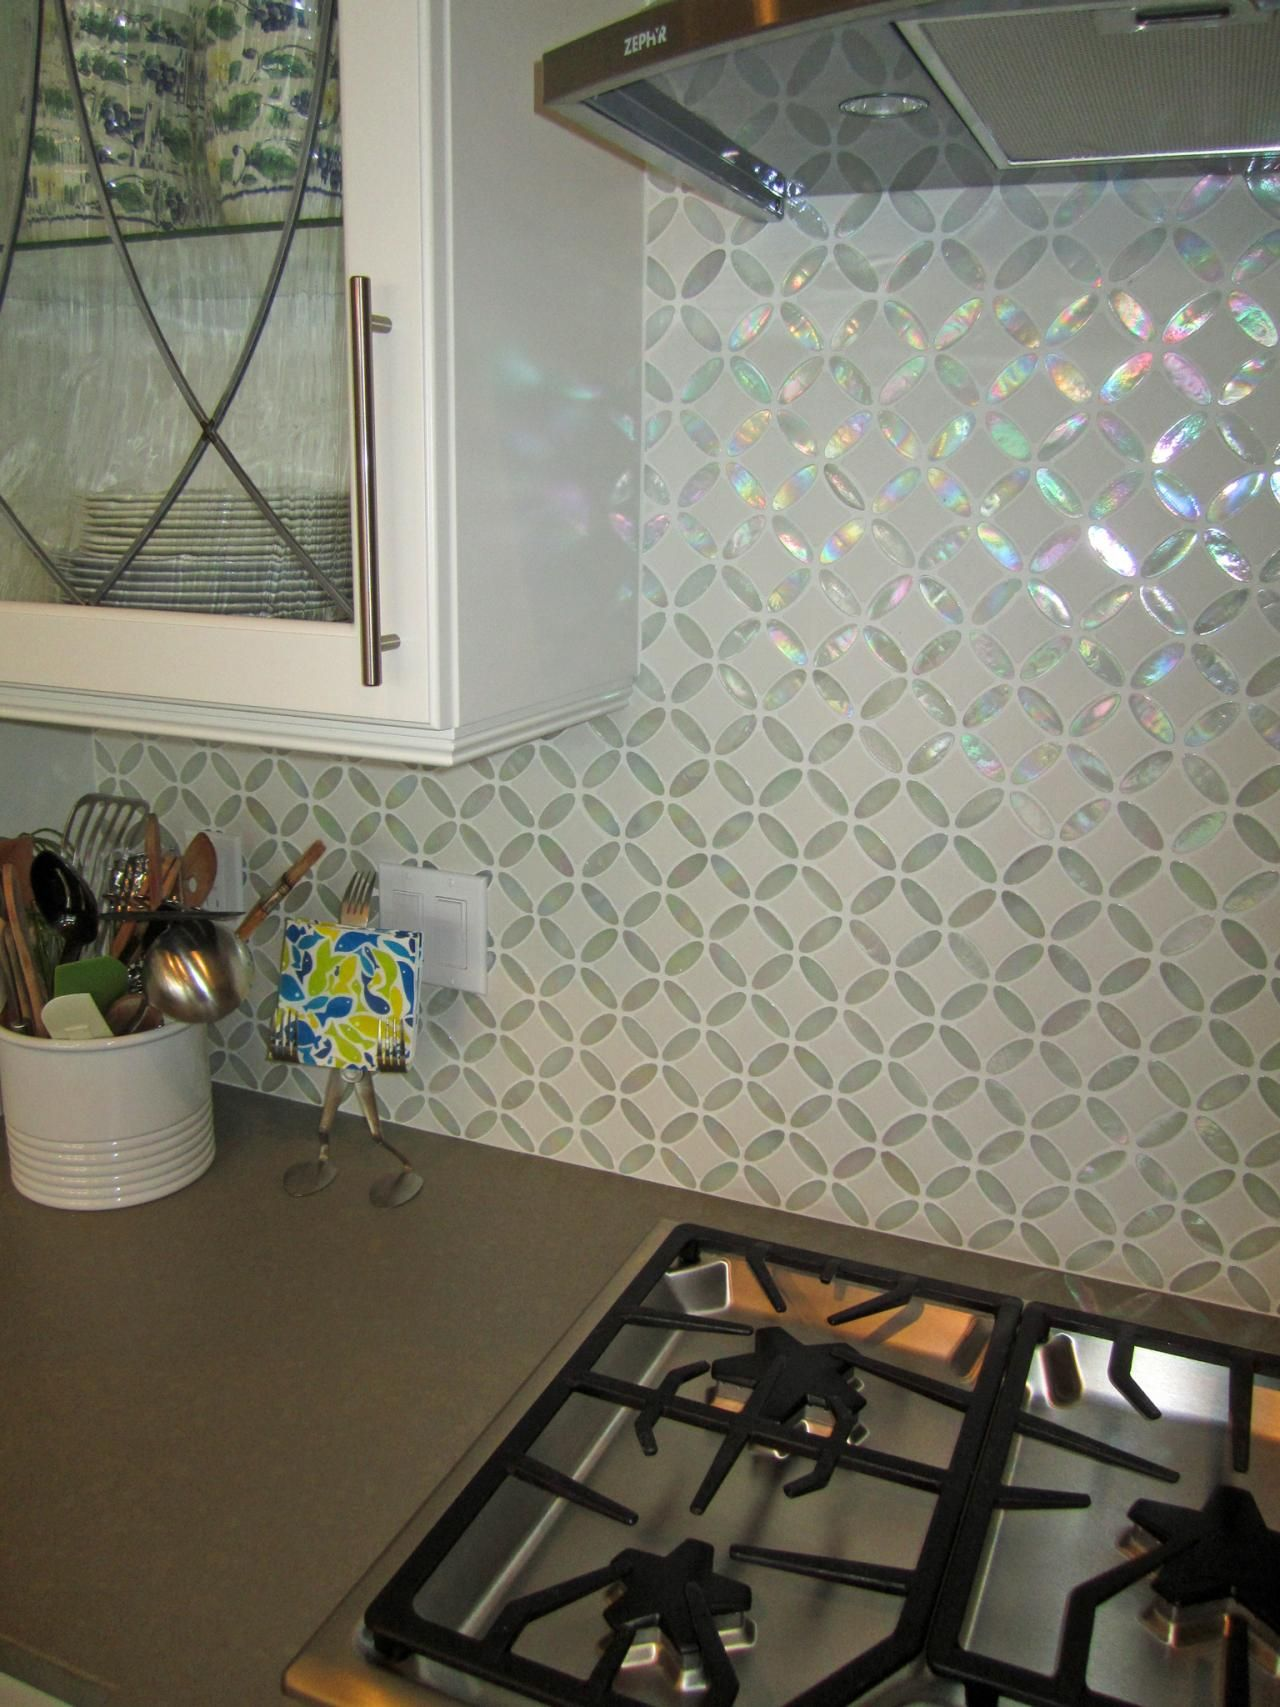 Hgtv Kitchen Backsplash Small Flat Screen Tv For Mosaic Backsplashes Pictures Ideas Tips From Design With Cabinets Islands